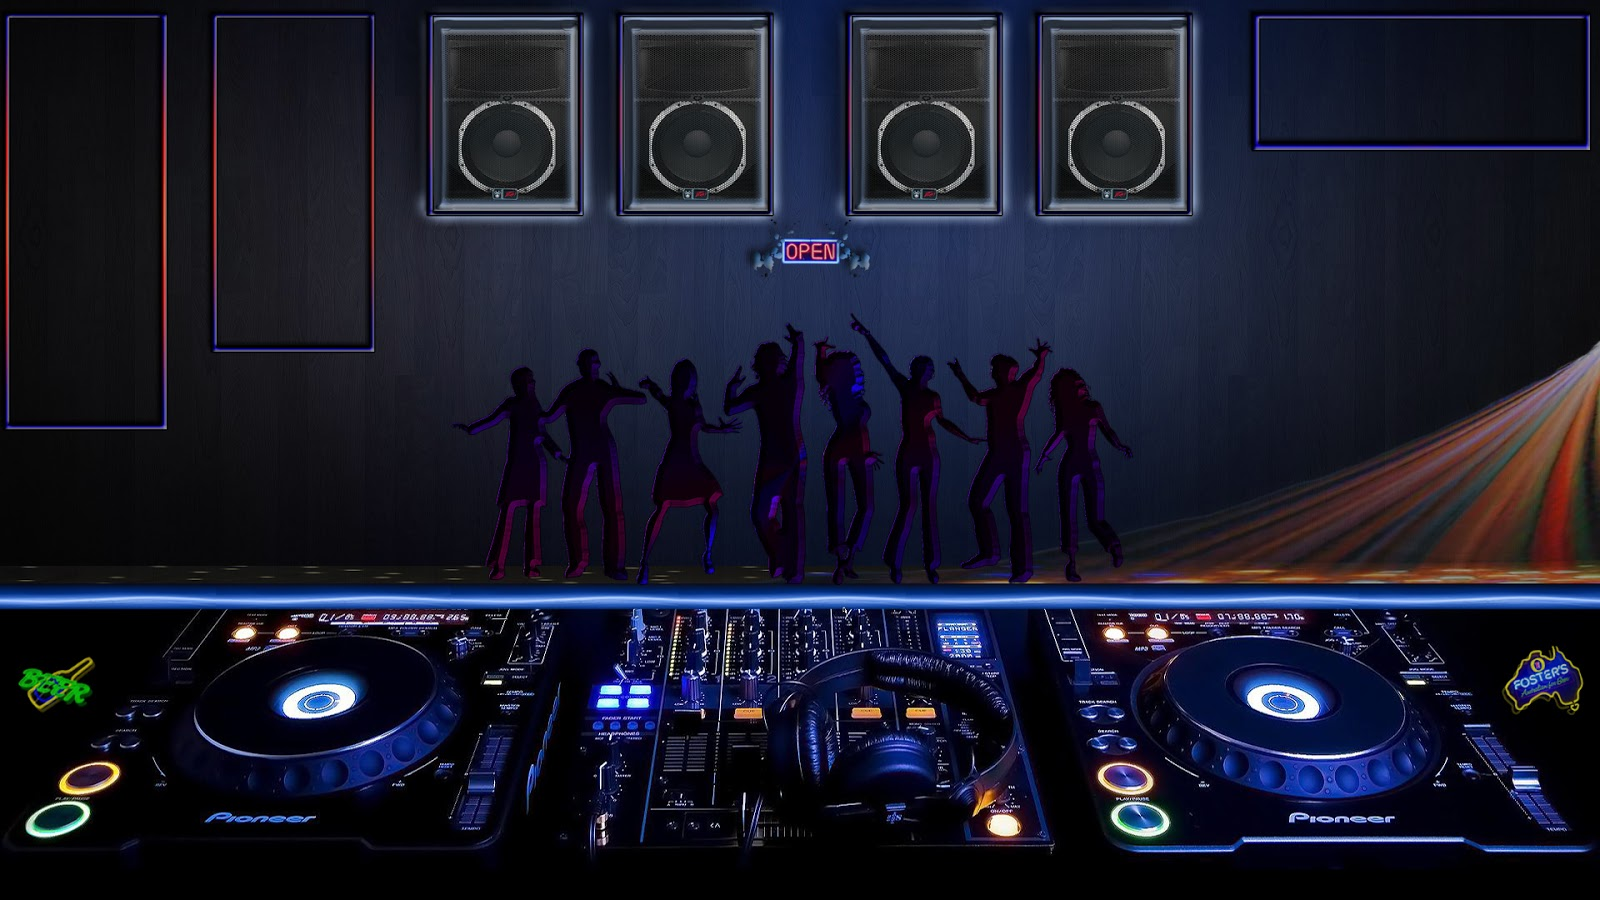 Hare Hare Dj Song Mp3 Download